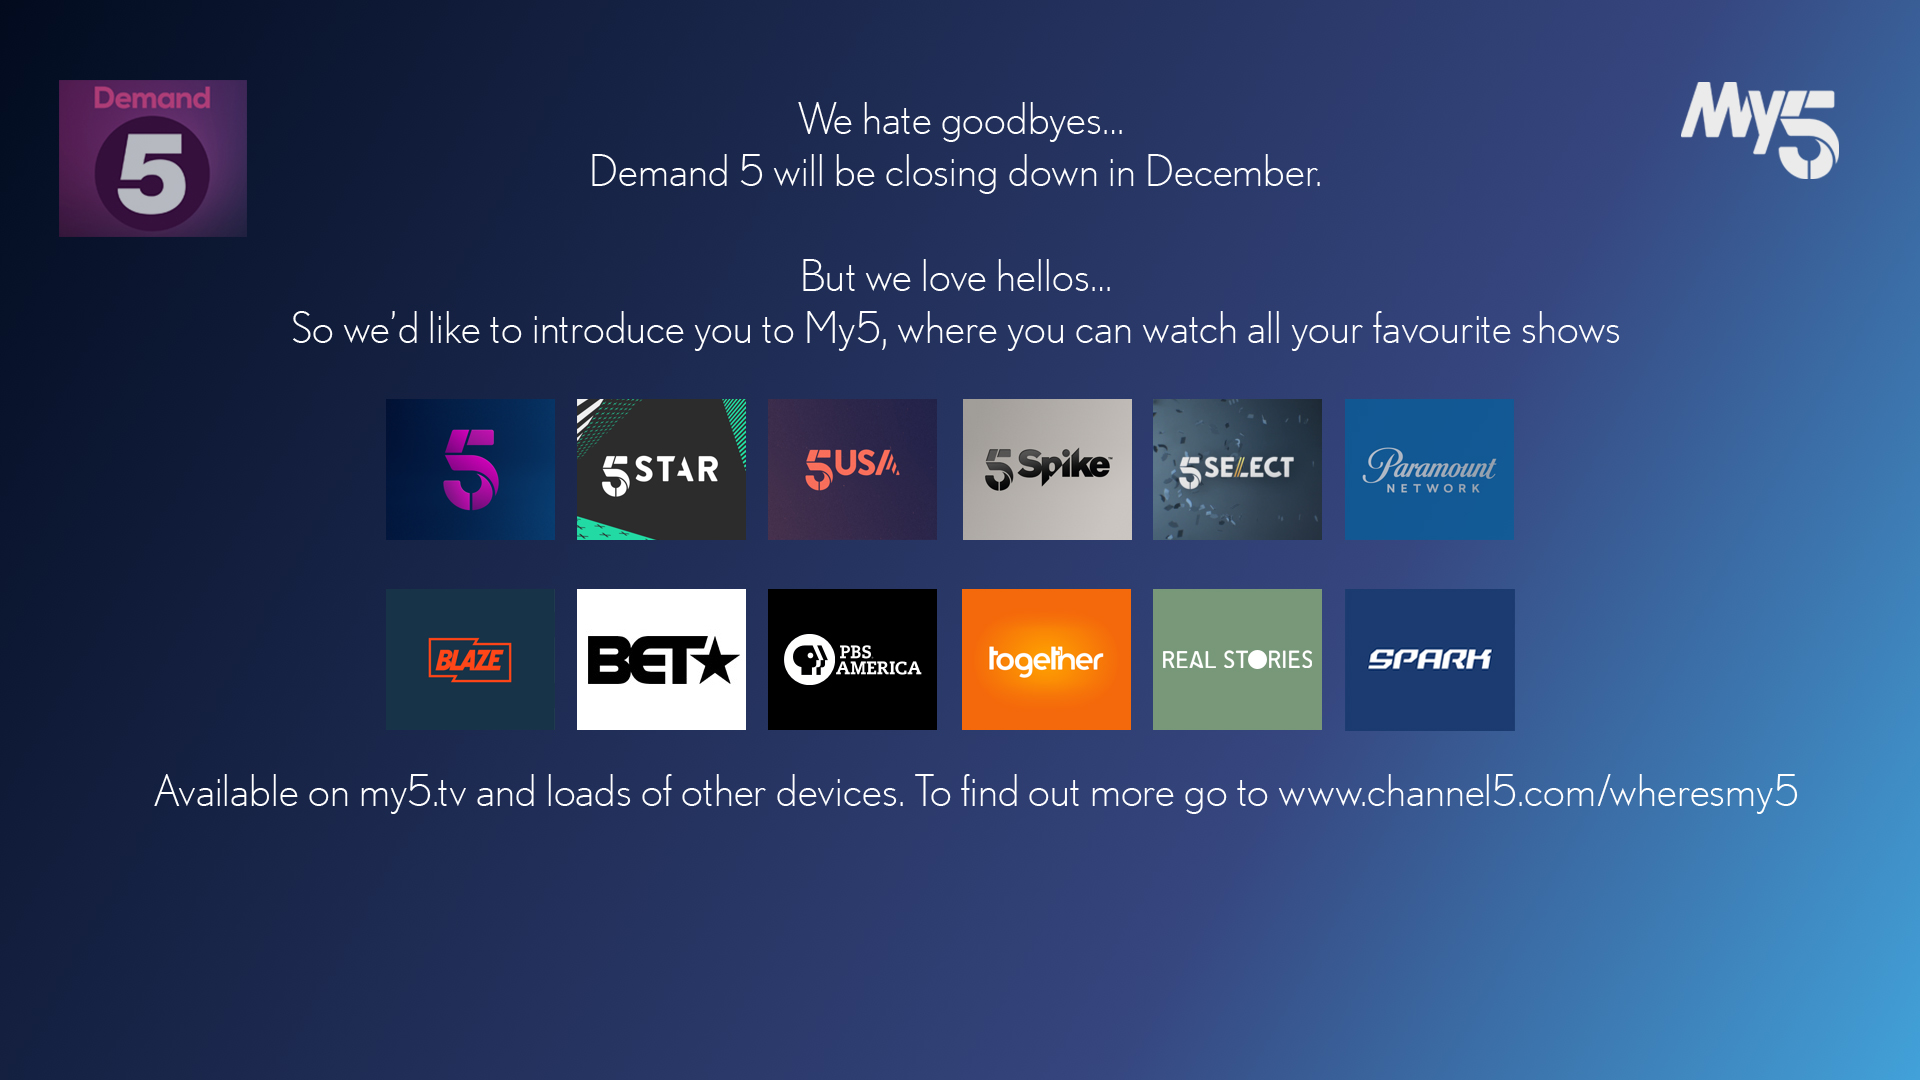 Screenshot of message about Demand 5 app closing down